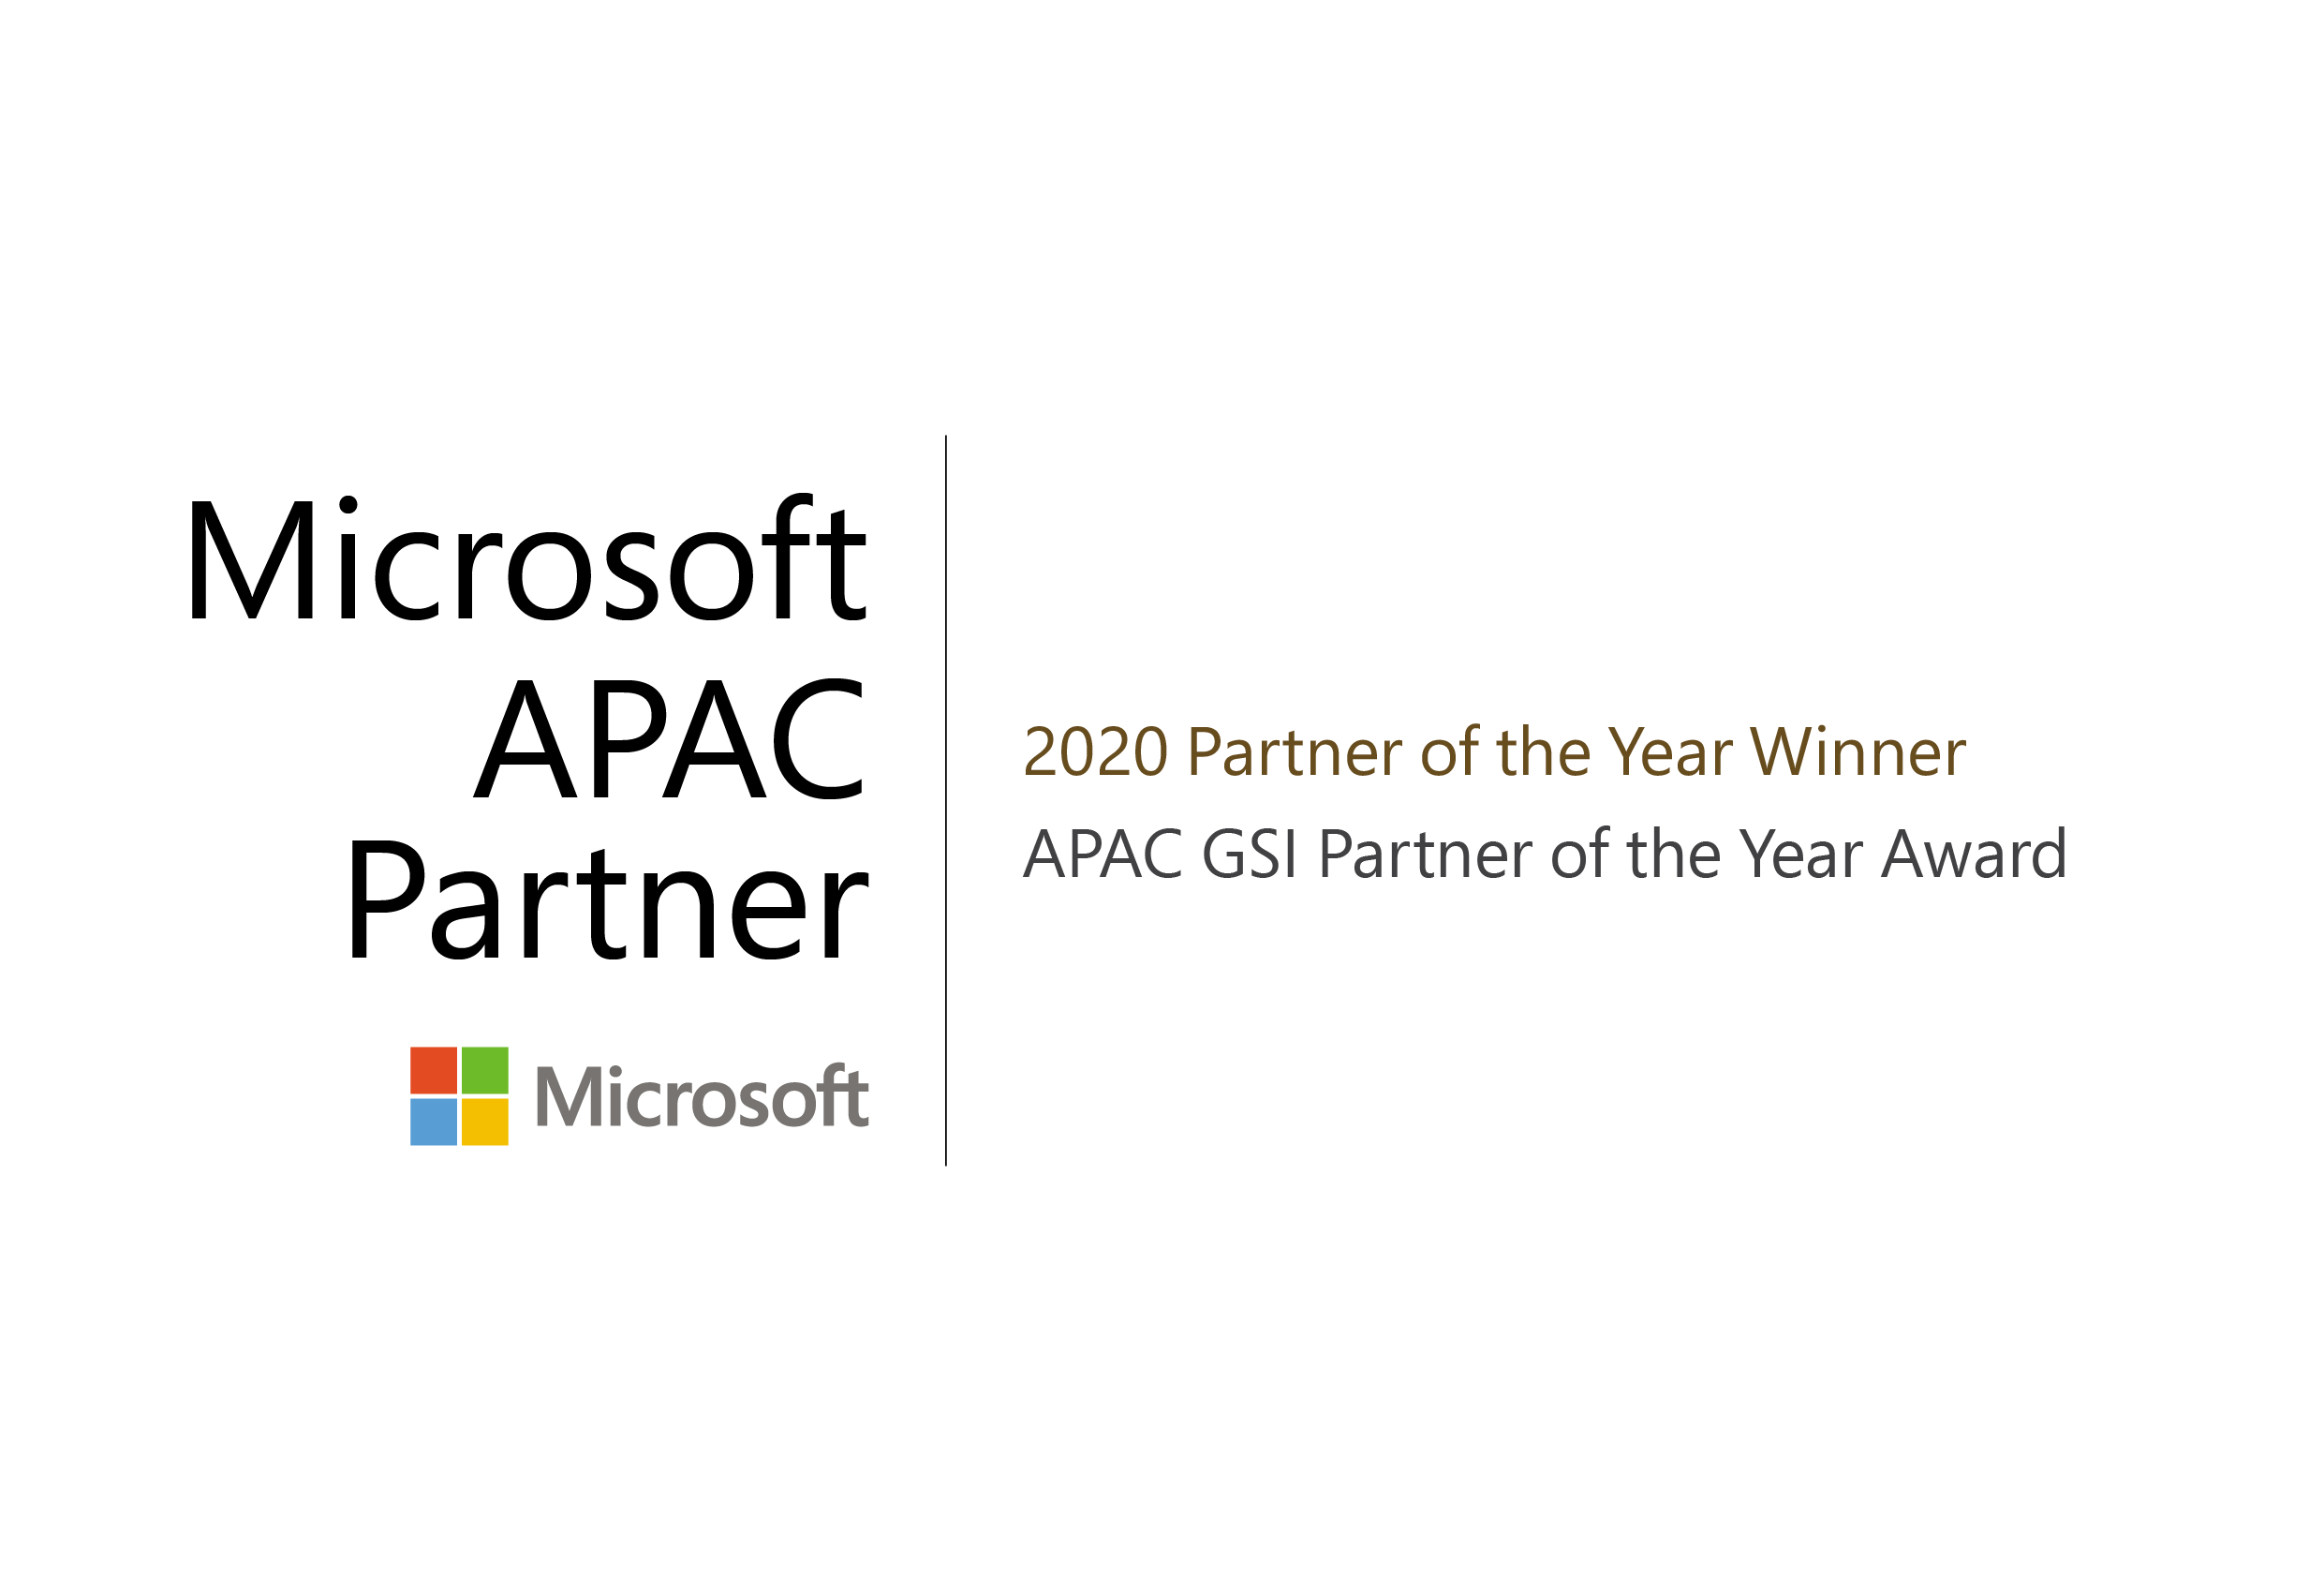 NTT DATA awarded as the 2020 Microsoft Asia Pacific Global Systems Integrator Partner of the Year